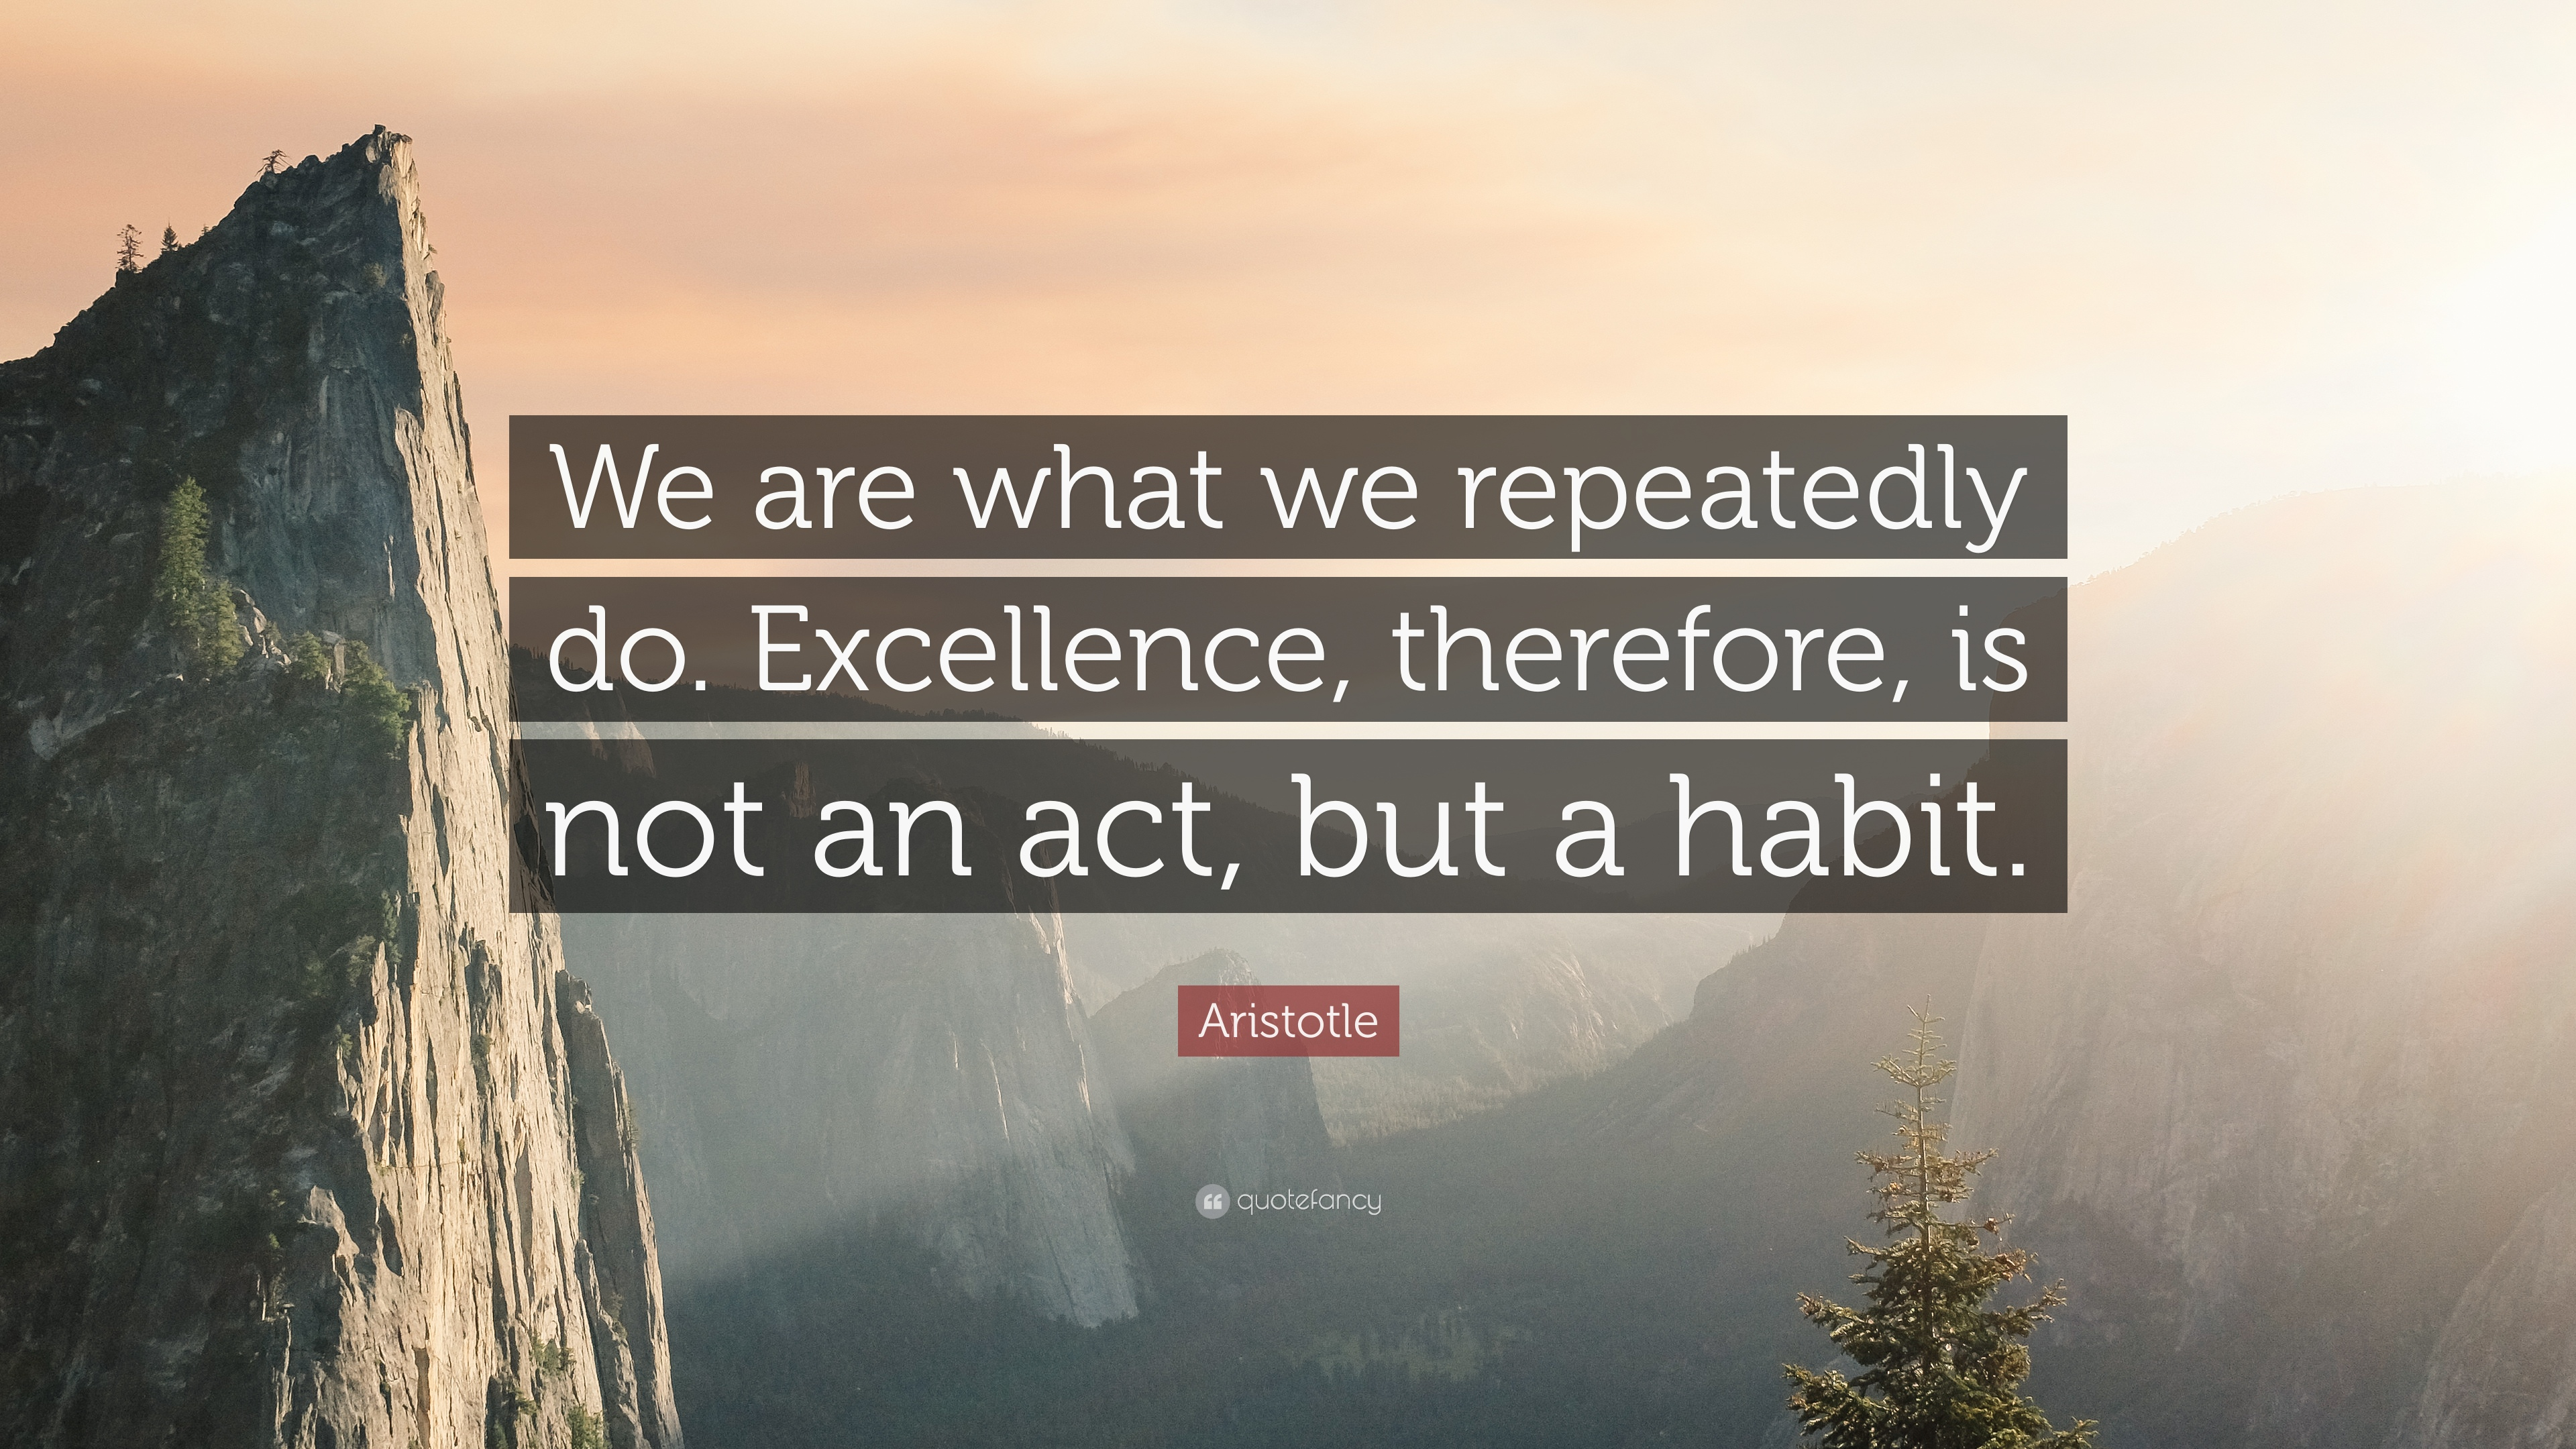 Persistence Quotes Wallpapers Aristotle Quote We Are What We Repeatedly Do Excellence